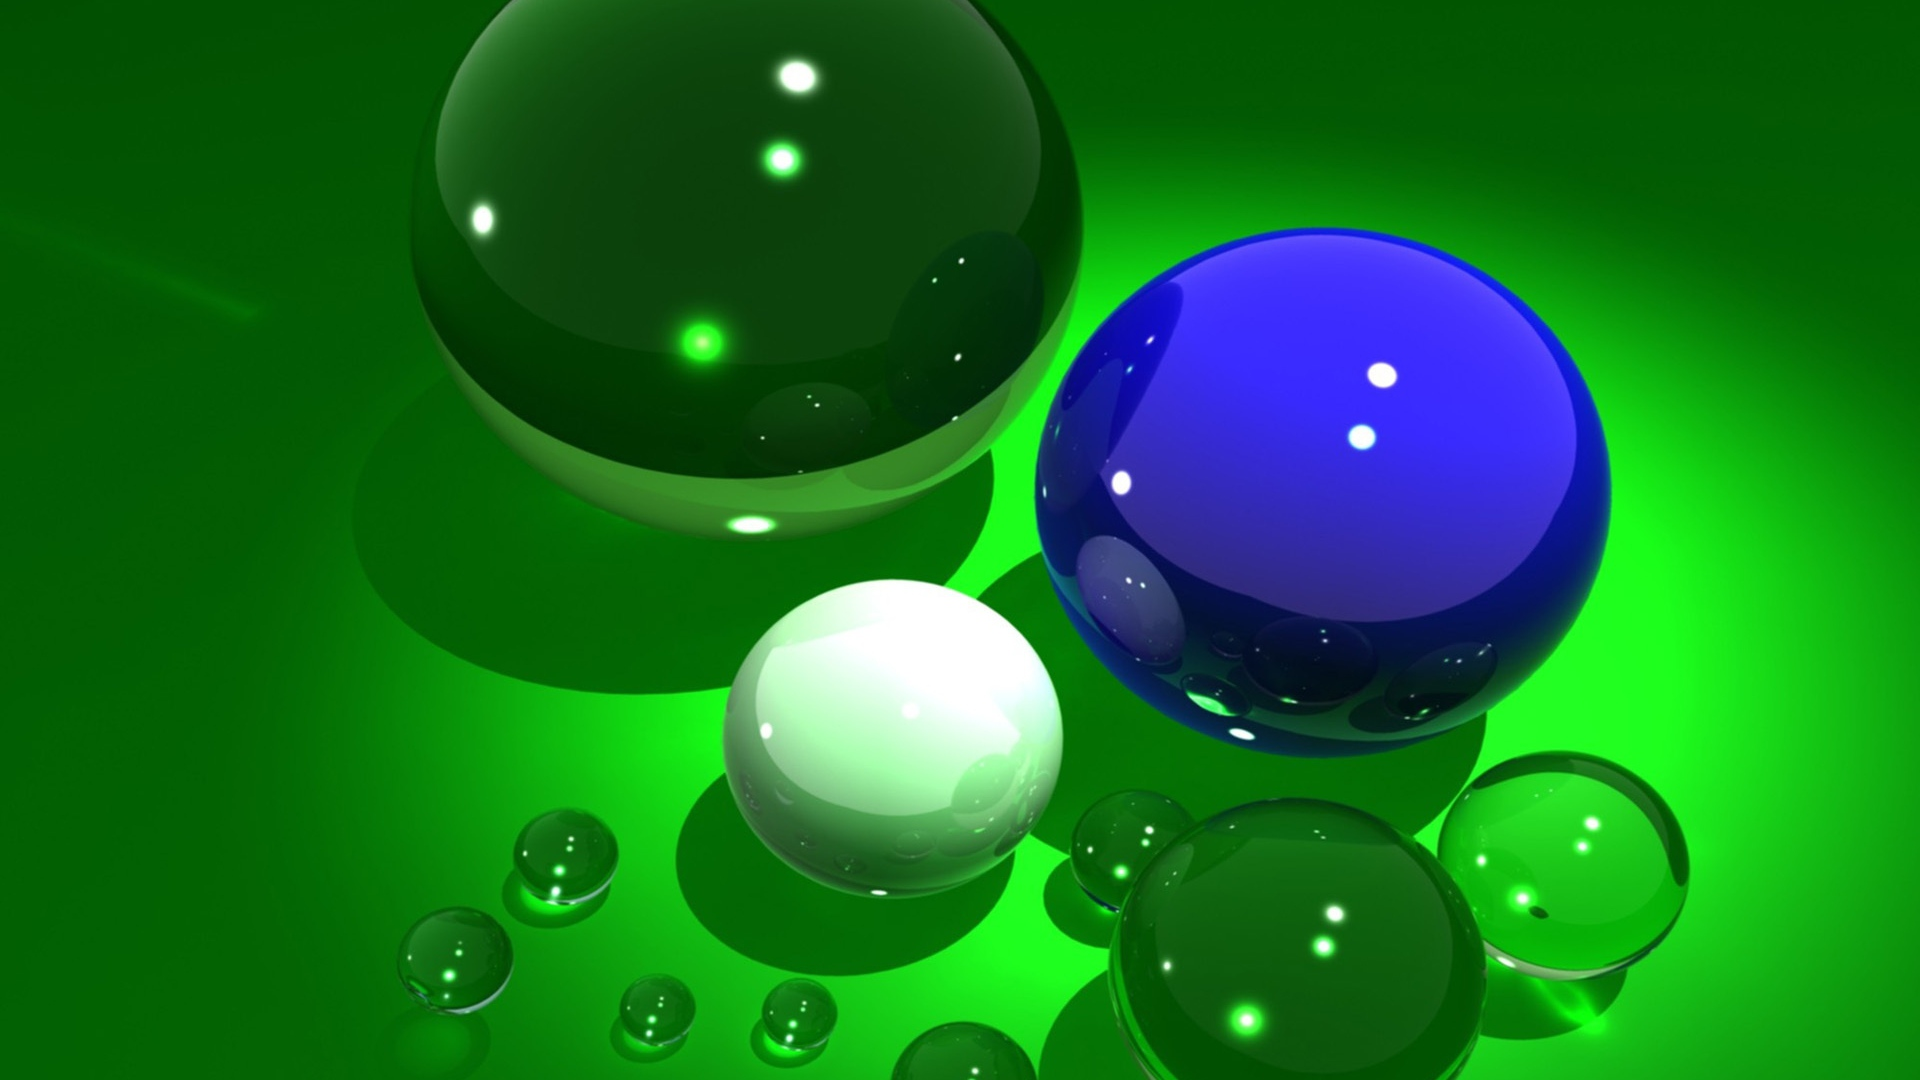 Glass 3d Hd Wallpapers 1080p: Download Wallpaper 1920x1080 Ball, Variety, Glass